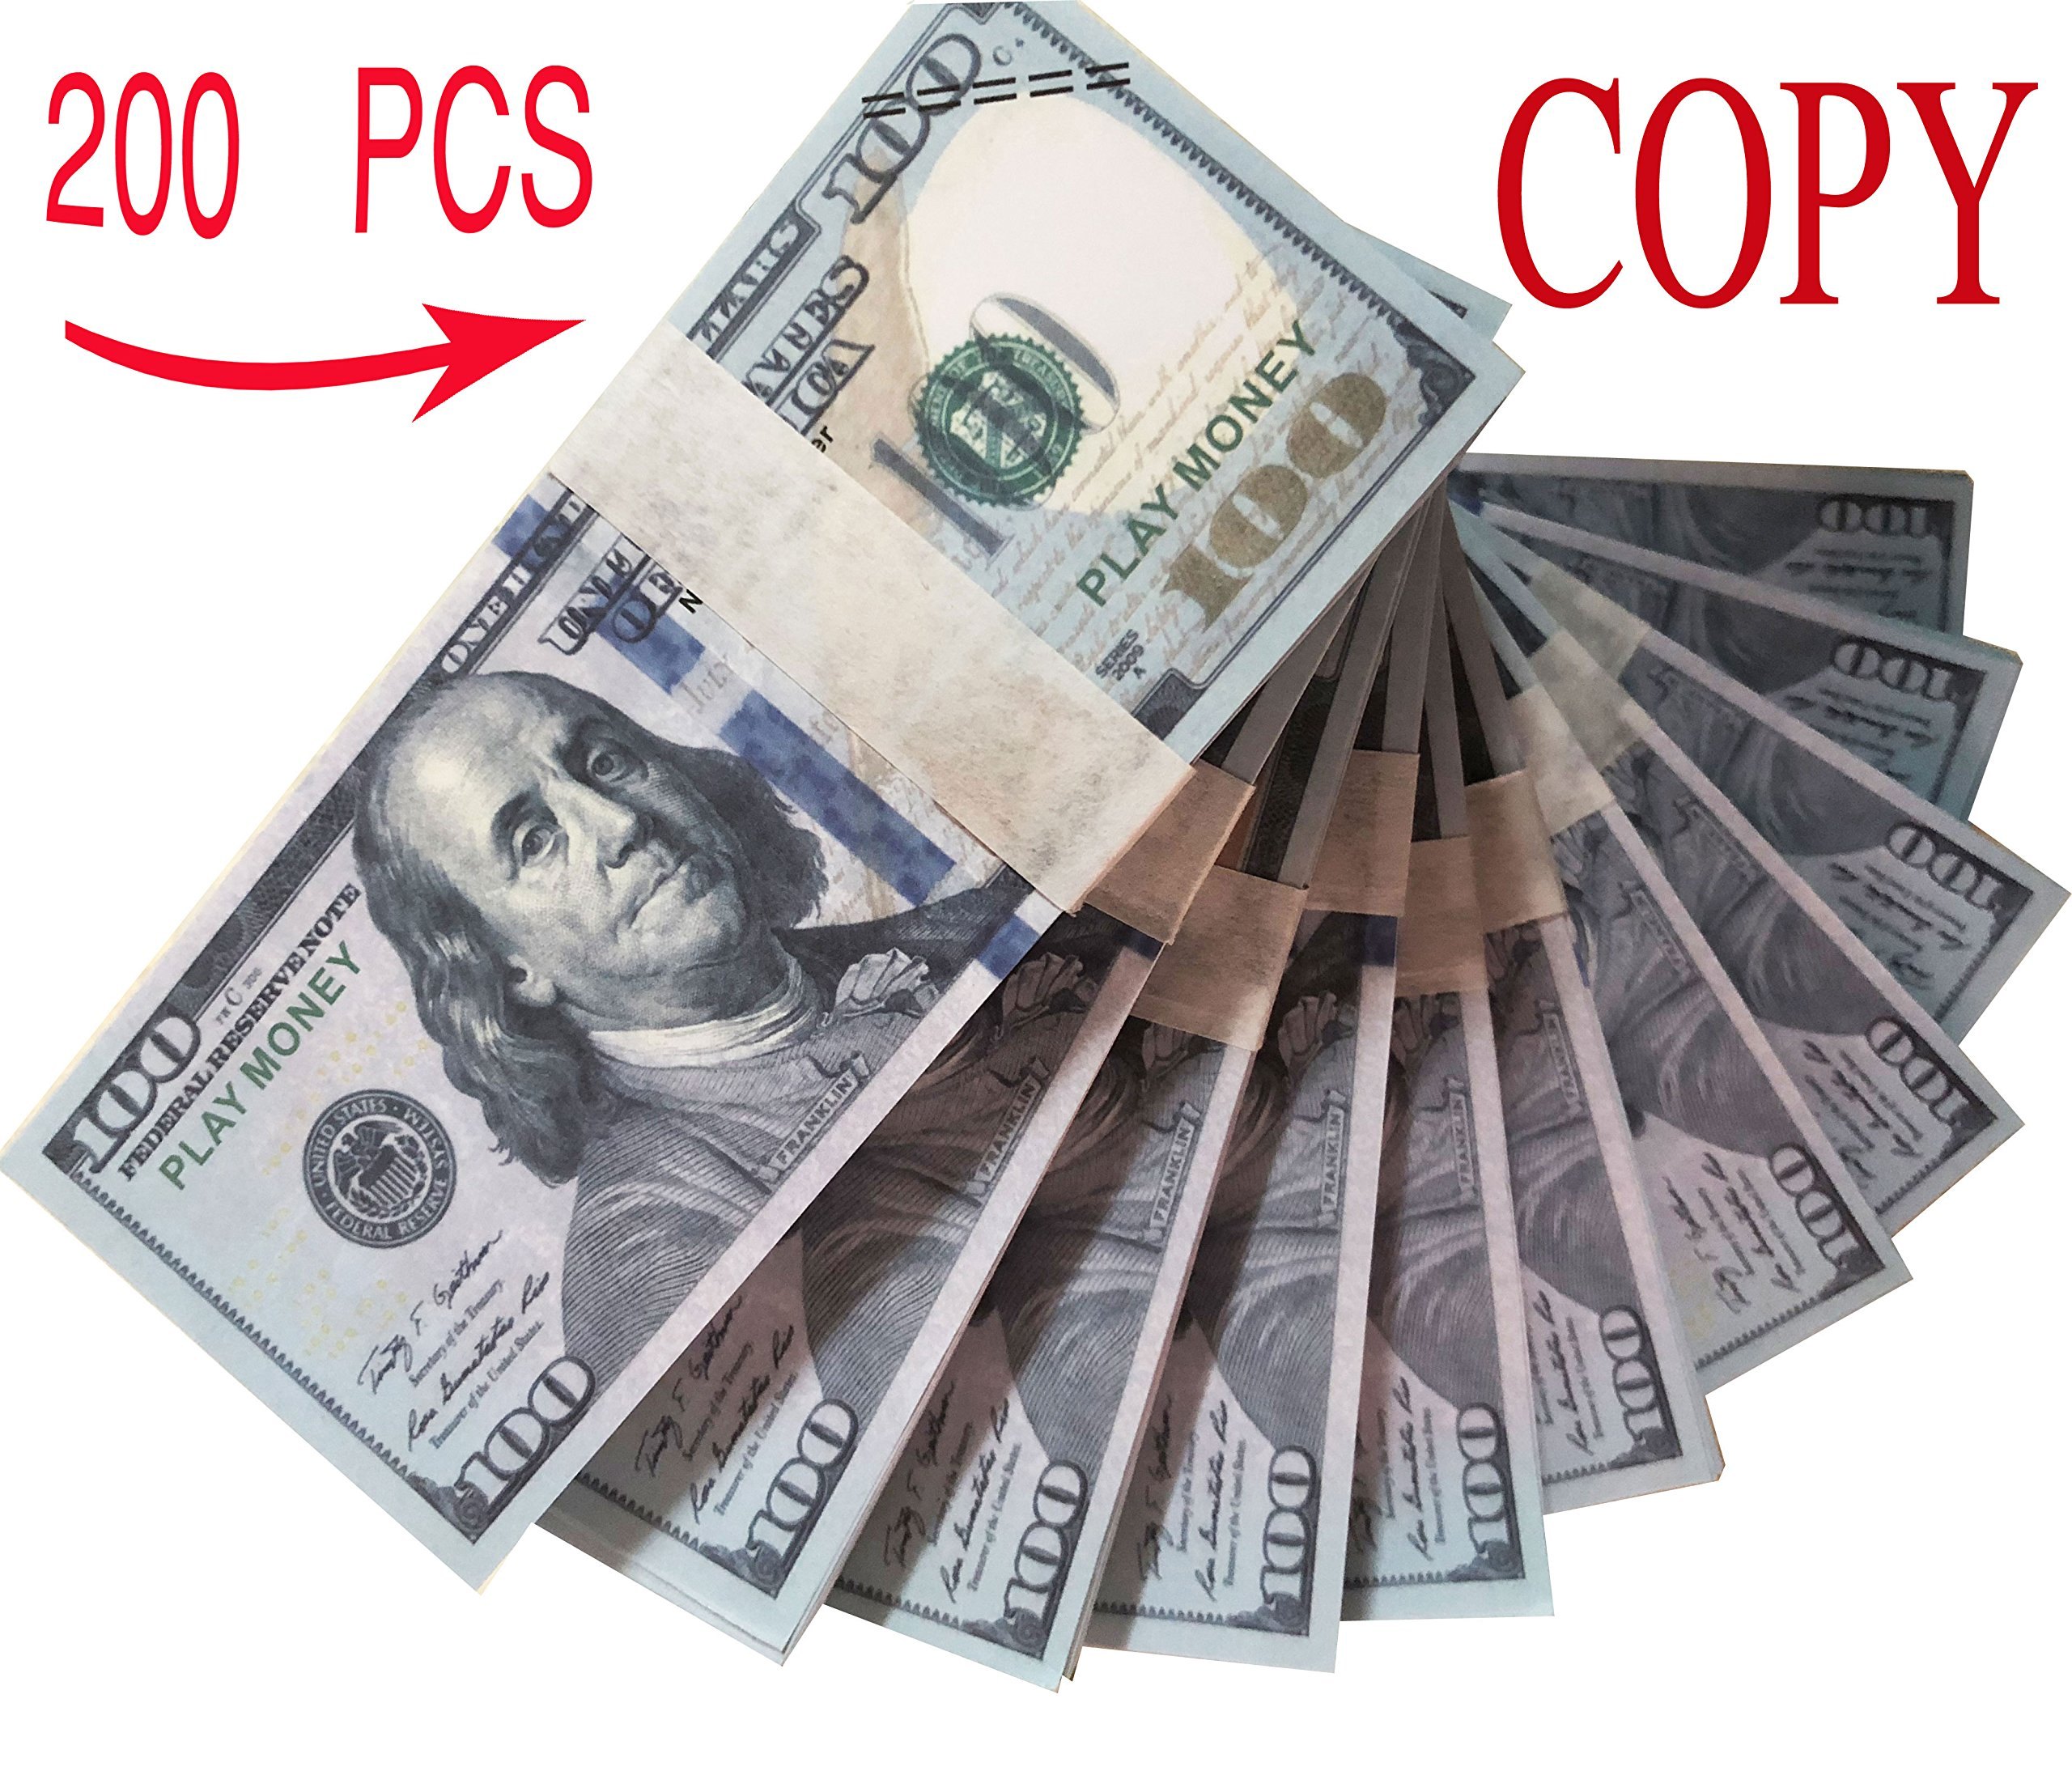 WLIFE Motion Picture Money Movie Prop Money Full Print 2 Sided 2 x $10000, Shipment from US,$100 Dollar Bills Stack Copy Money Fake Money That Looks Real Realistic Money Stack Published Thickening